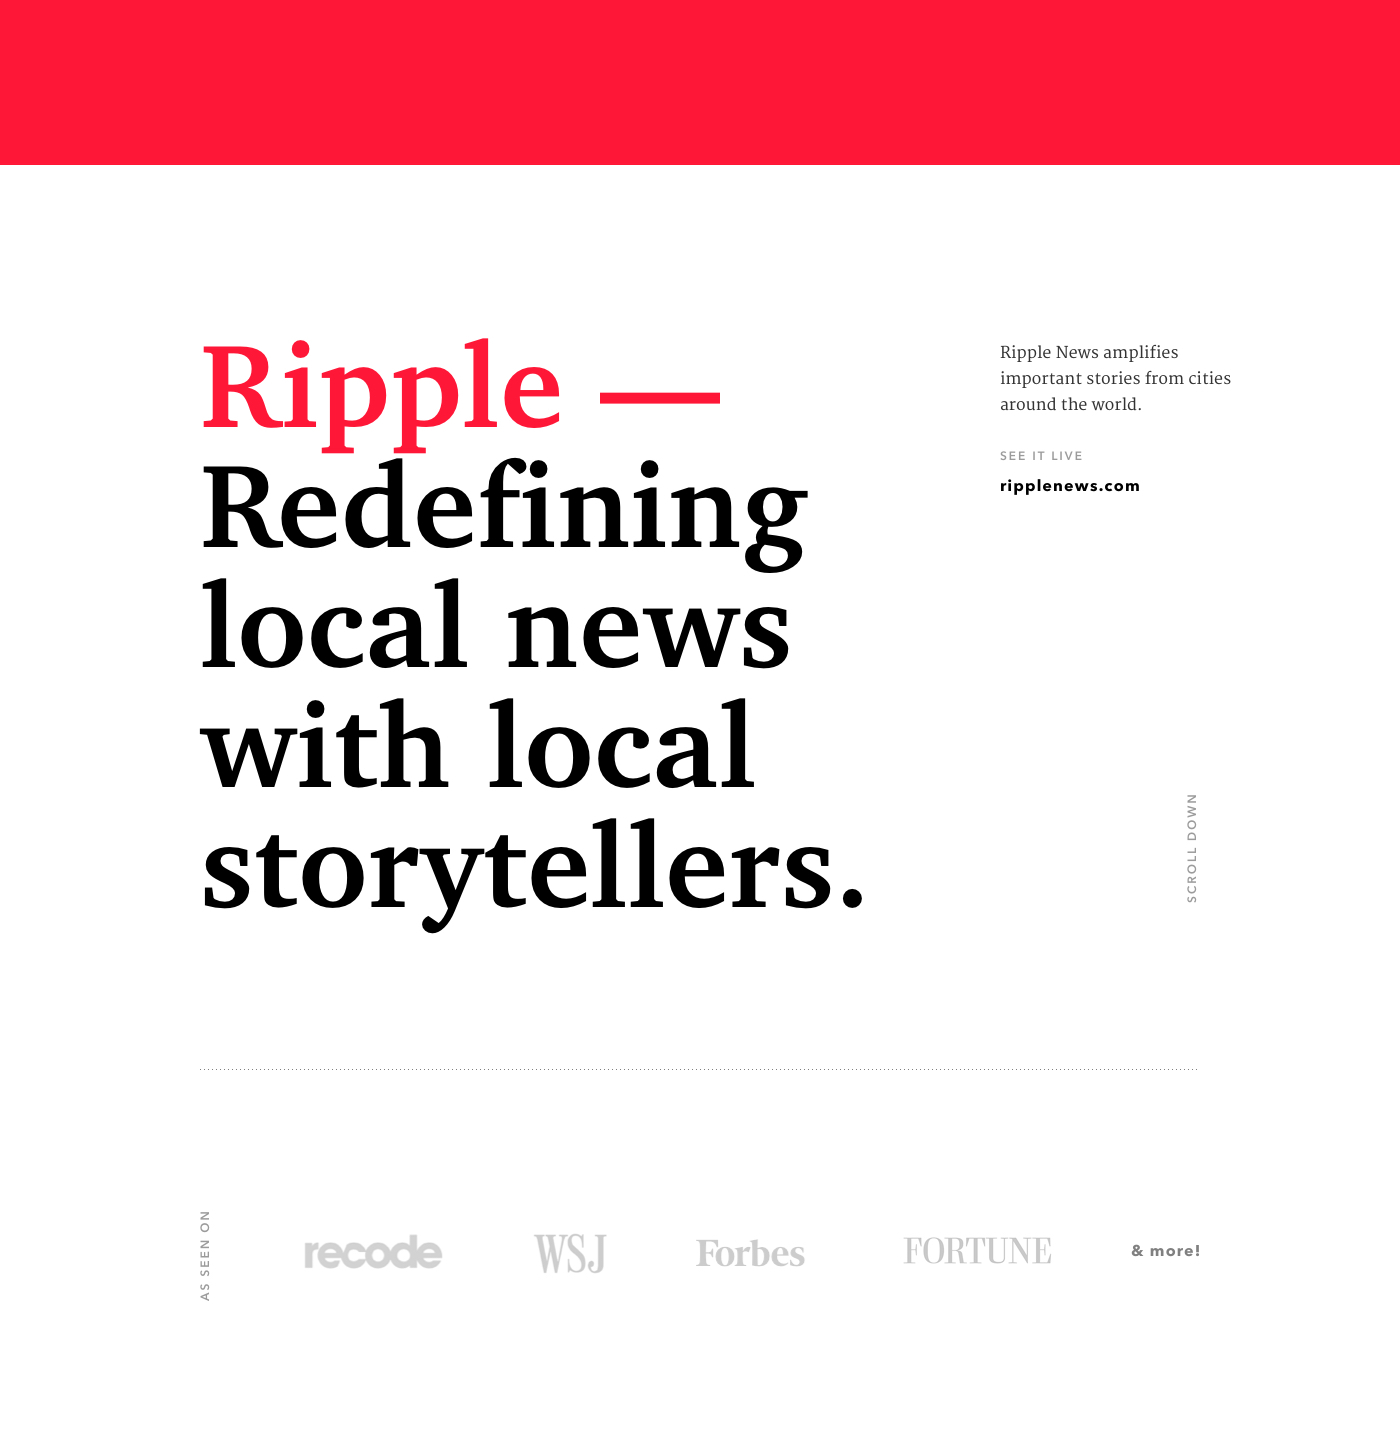 Interaction Design: Ripple News